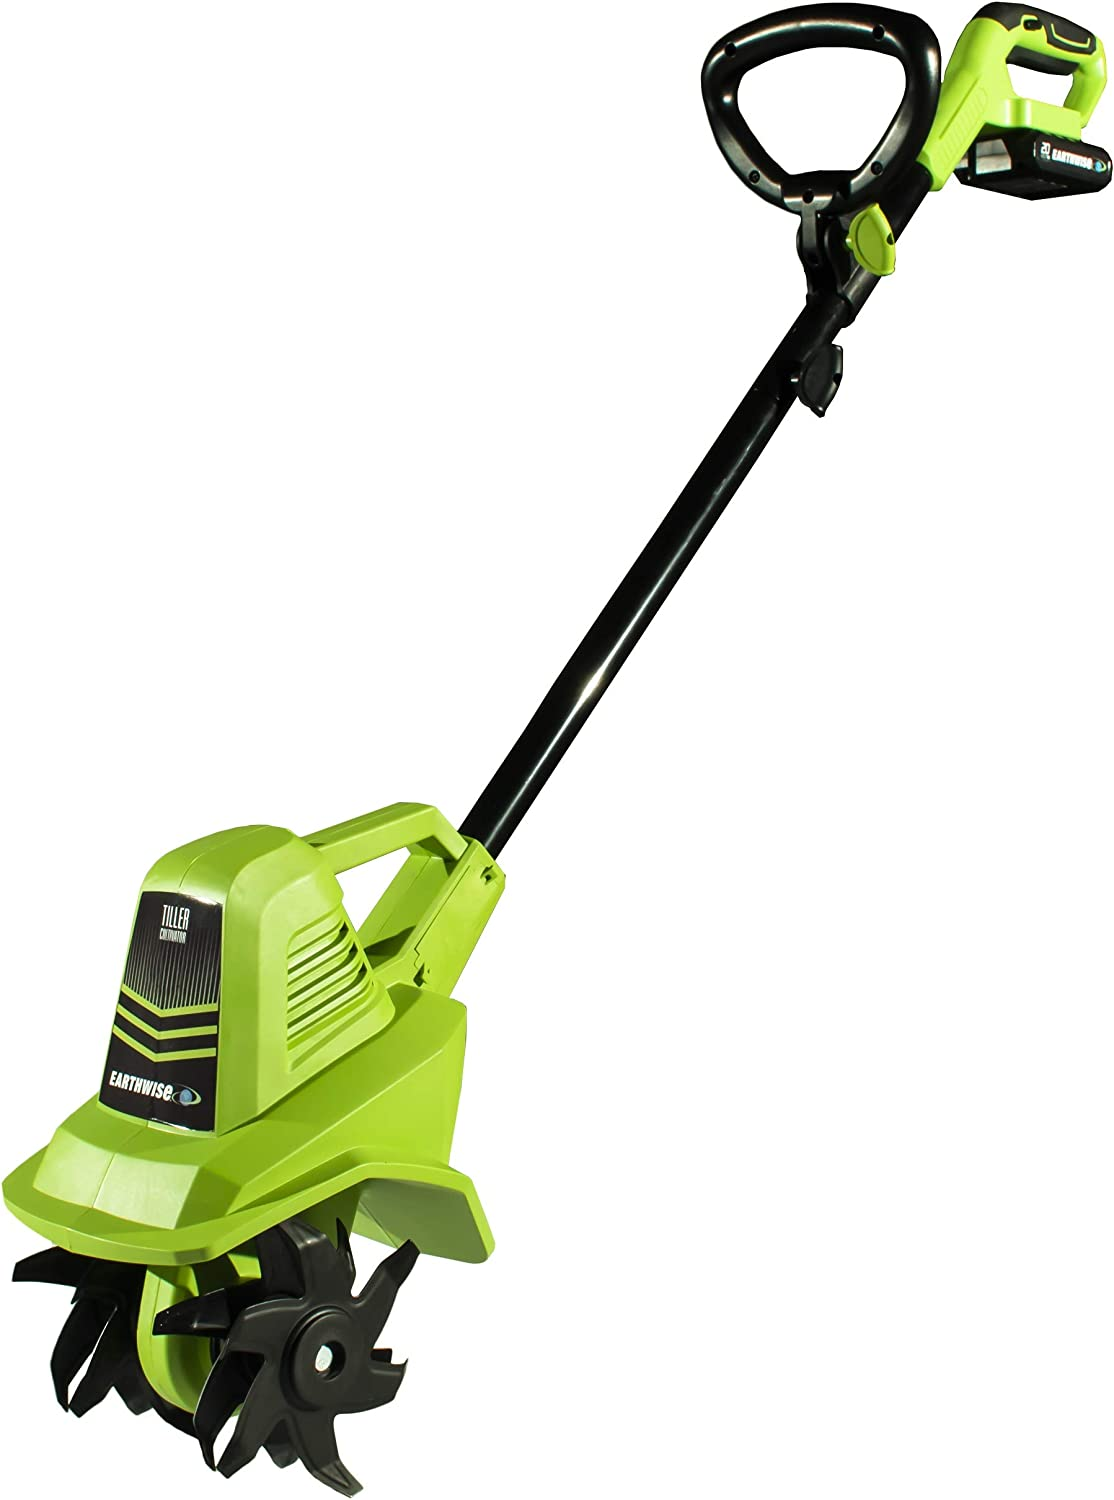 Earthwise TC70020 20-Volt 7.5-Inch Cordless Tiller, 2AH Battery Fast Charger Included